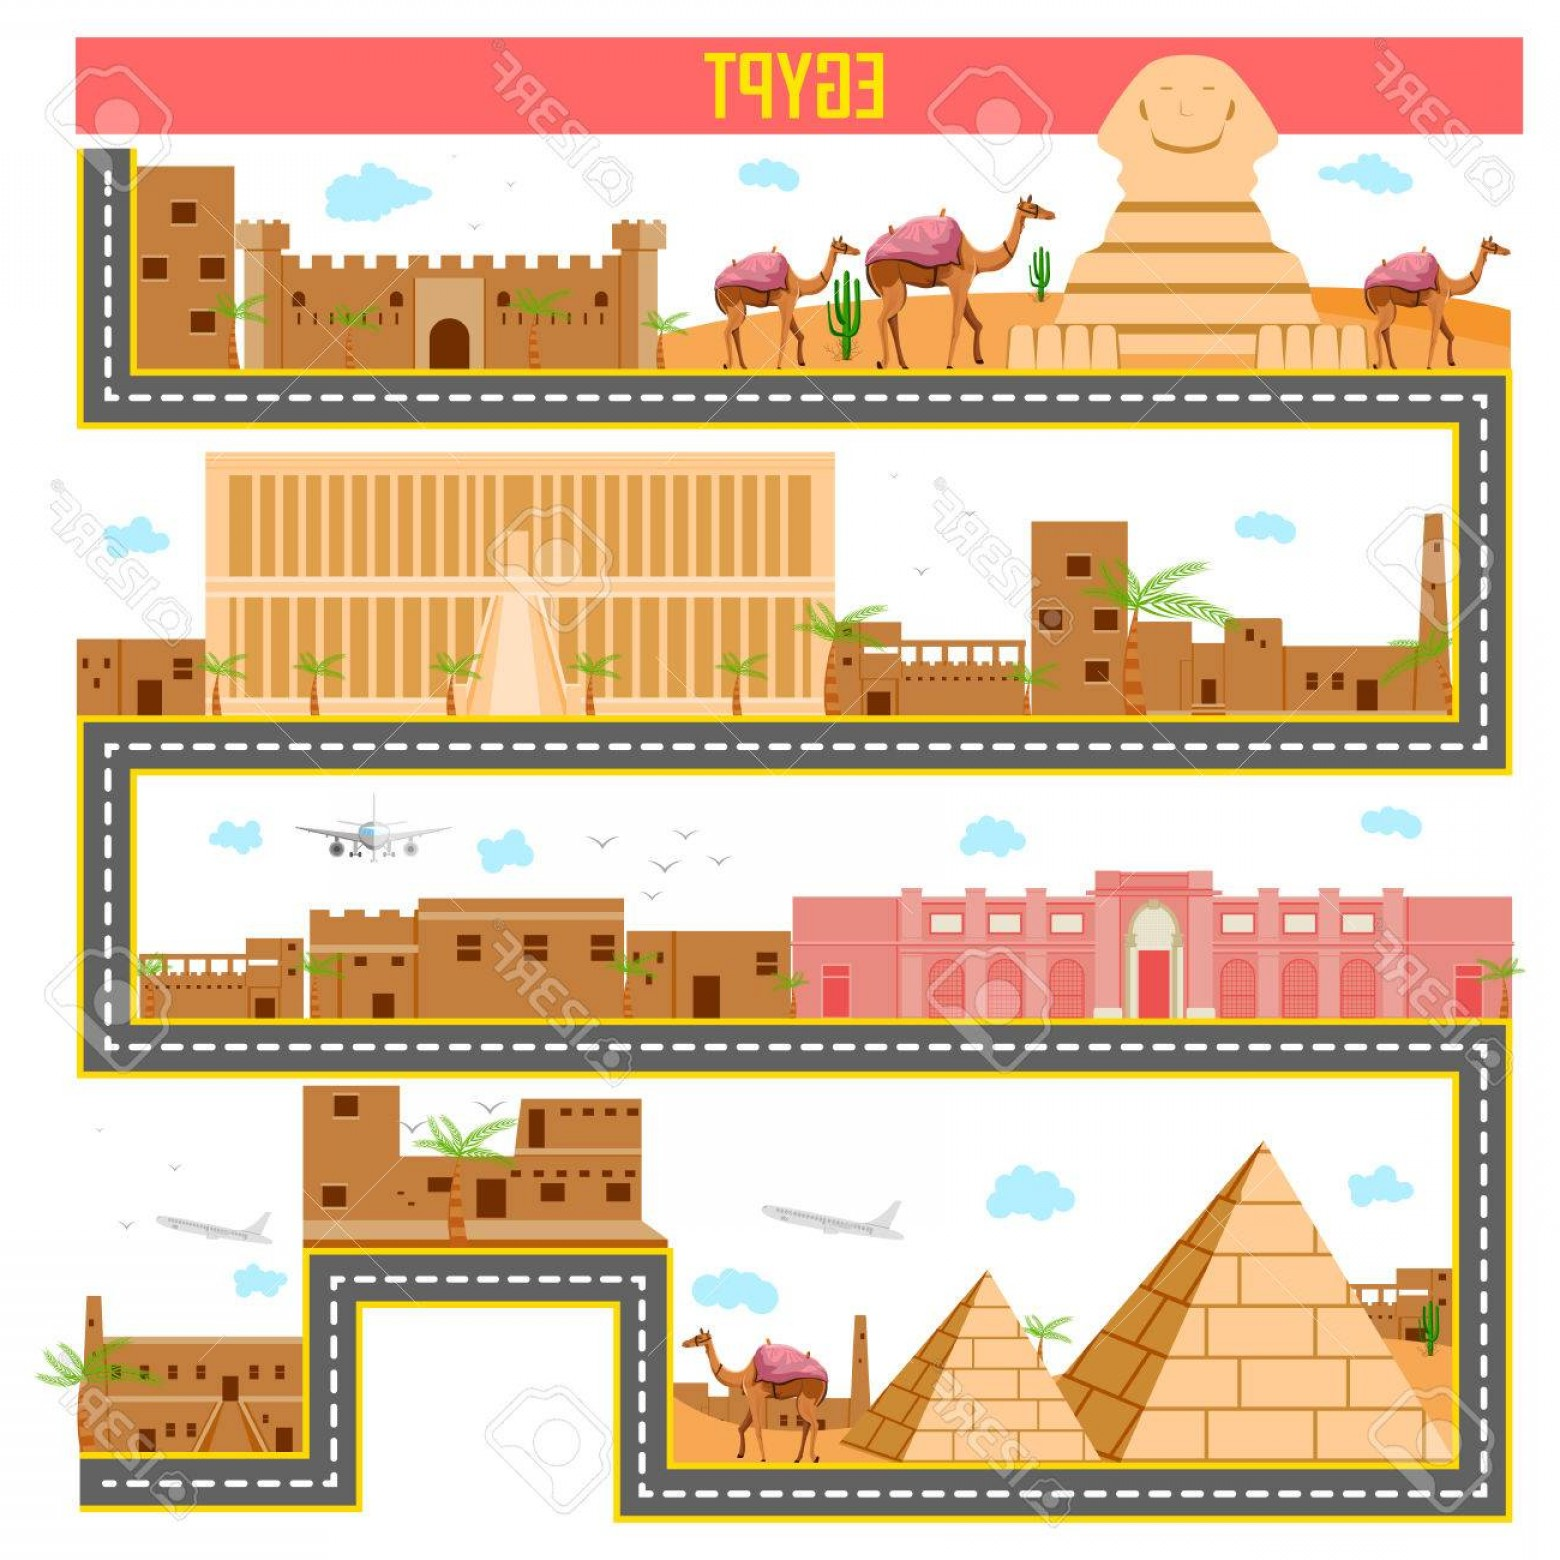 Famous Easy Vectors: Photoeasy To Edit Vector Illustration Of Cityscape With Famous Monument And Building Of Egypt